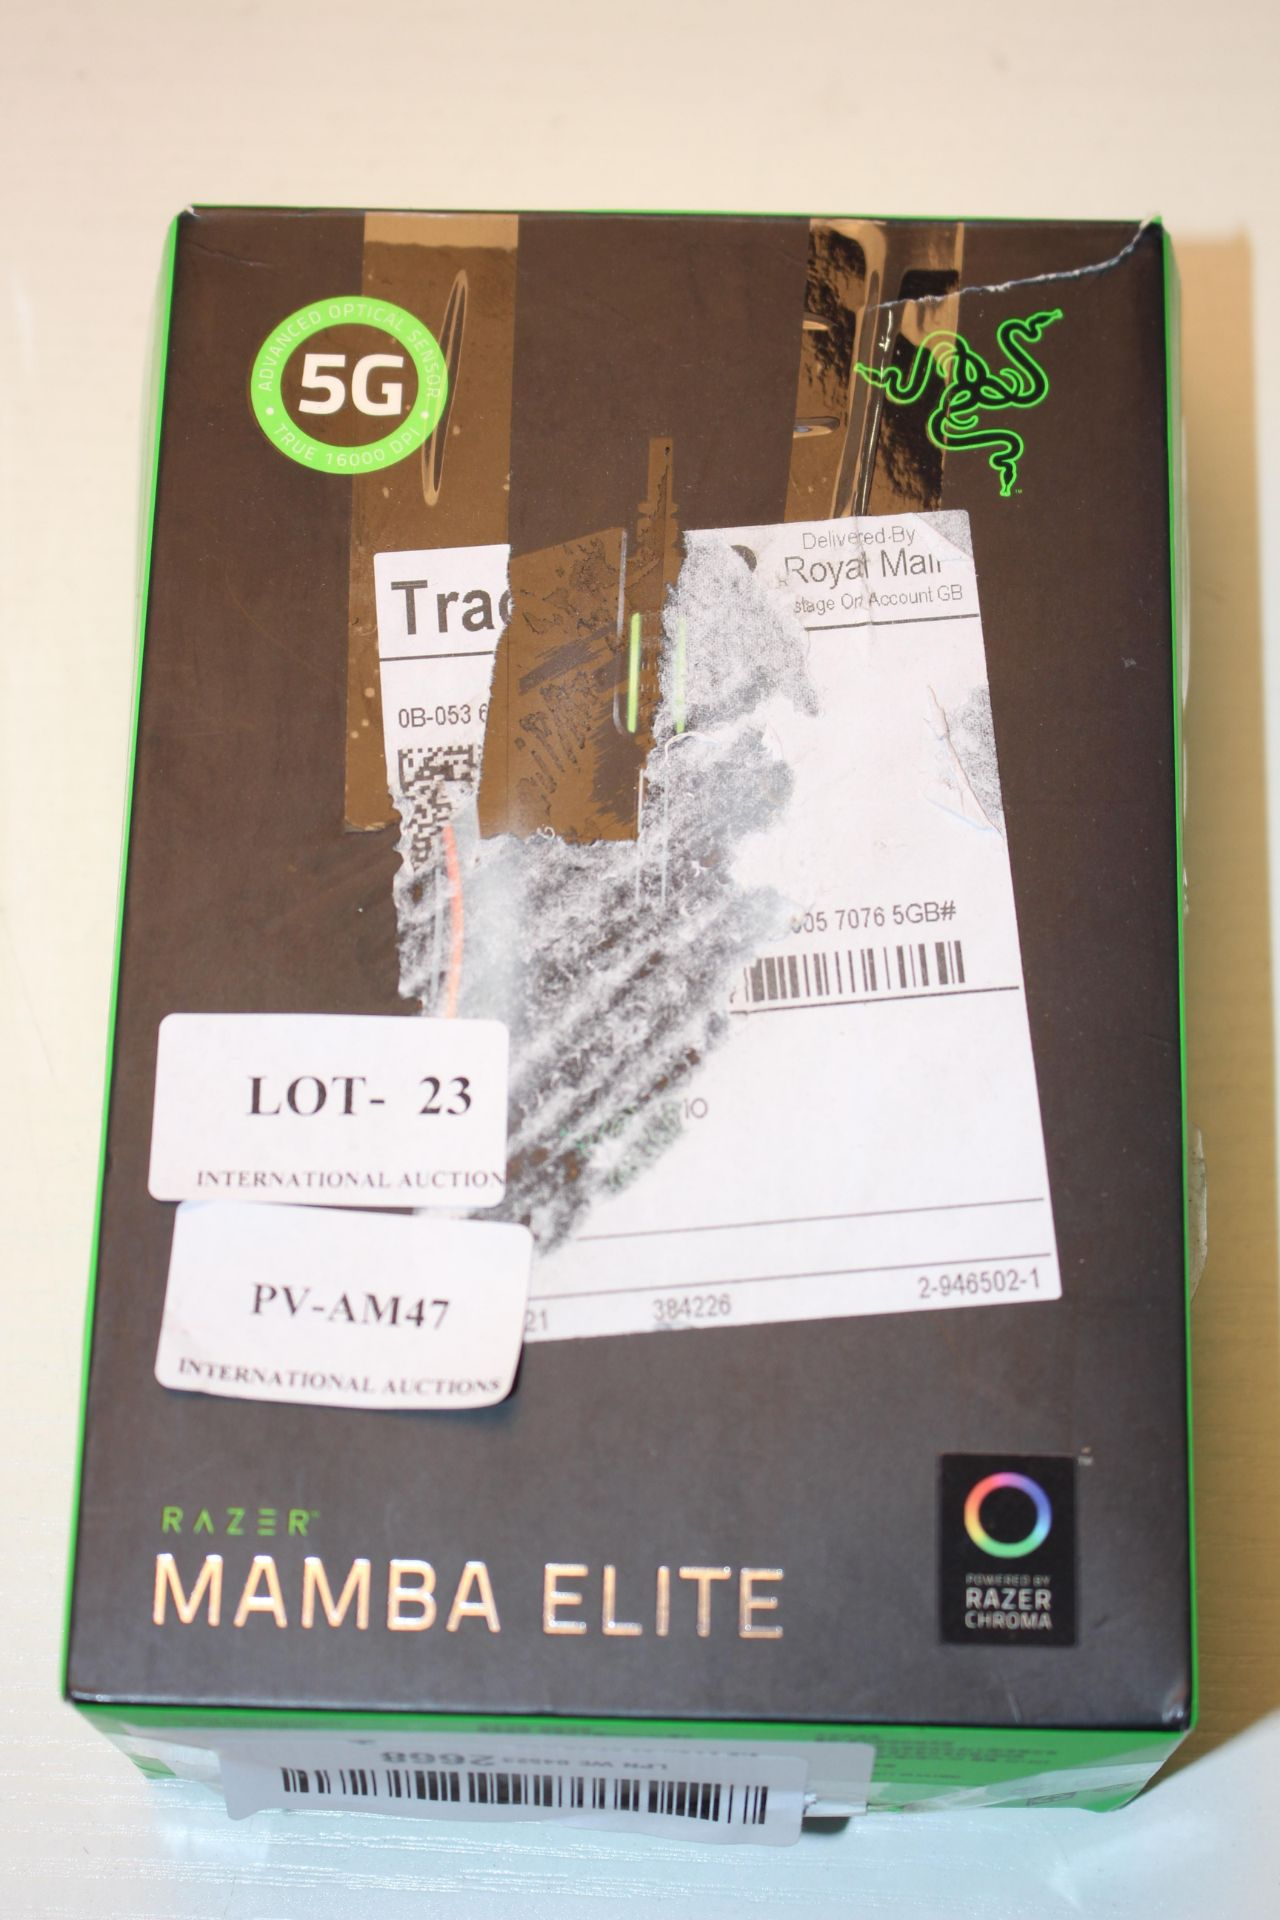 BOXED RAZER MAMBA ELITE GAMING MOUSE RRP £99.00Condition ReportAppraisal Available on Request- All